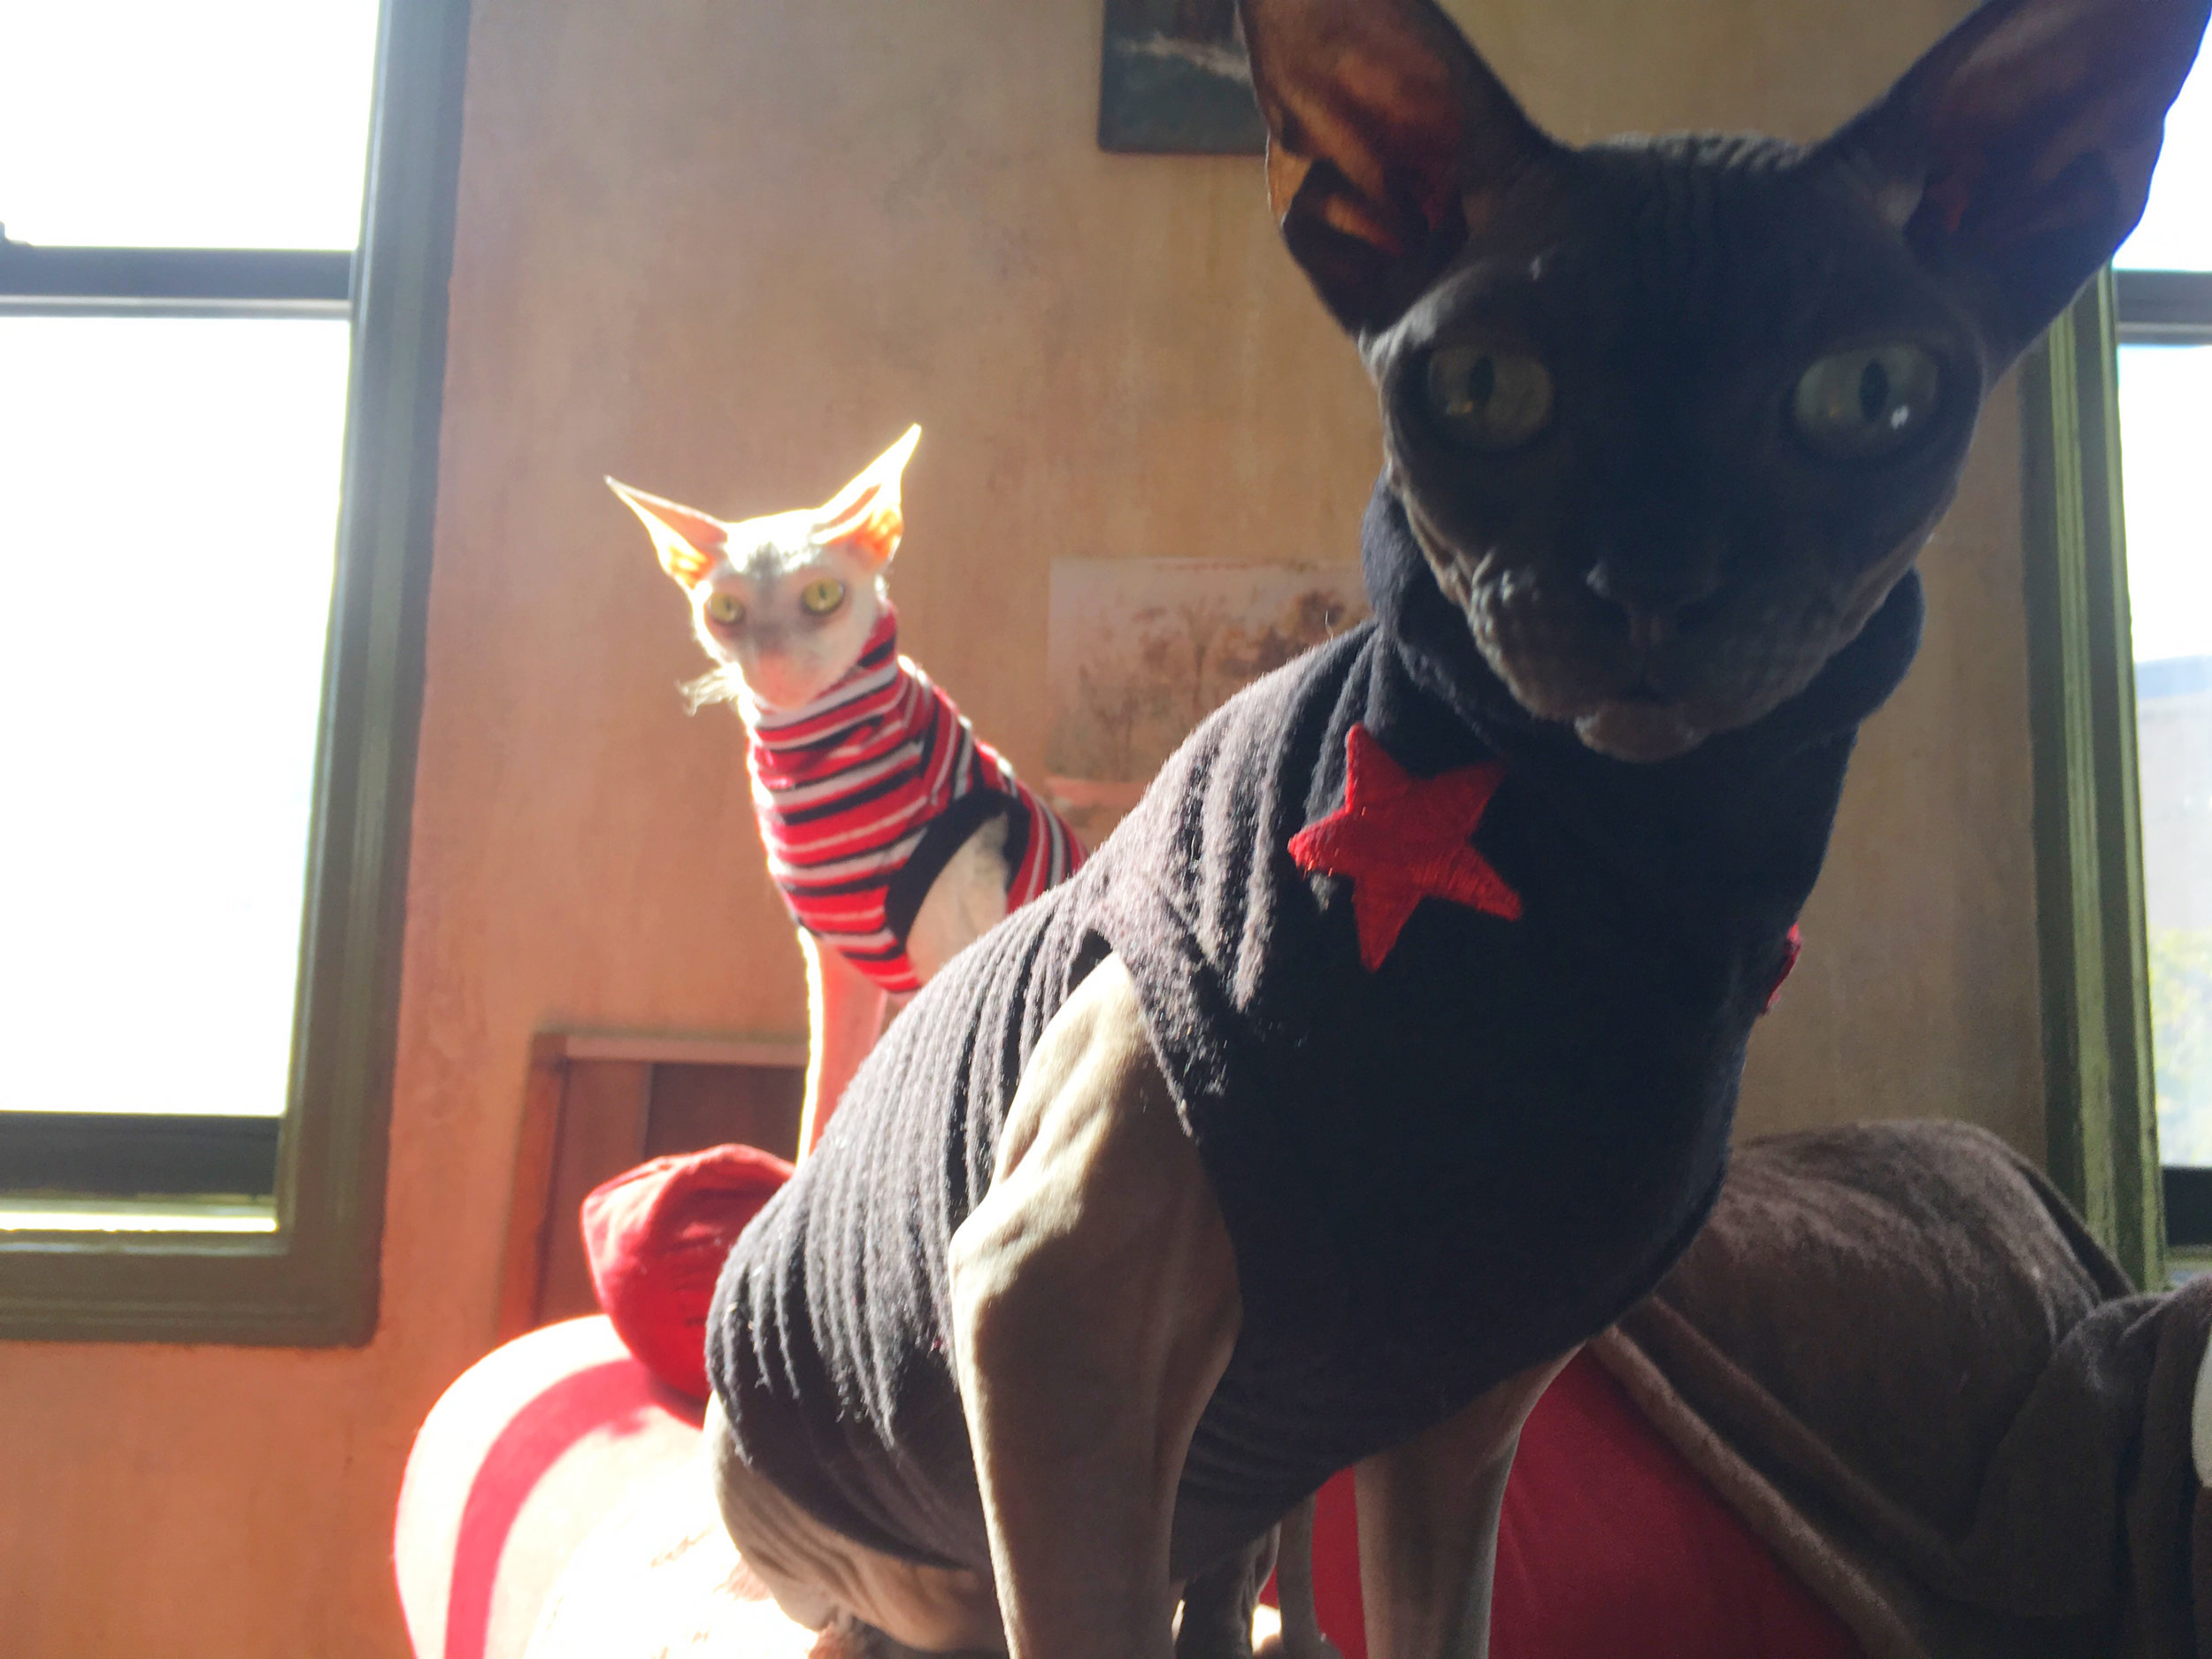 The Dynamic Duo. #cats4cats